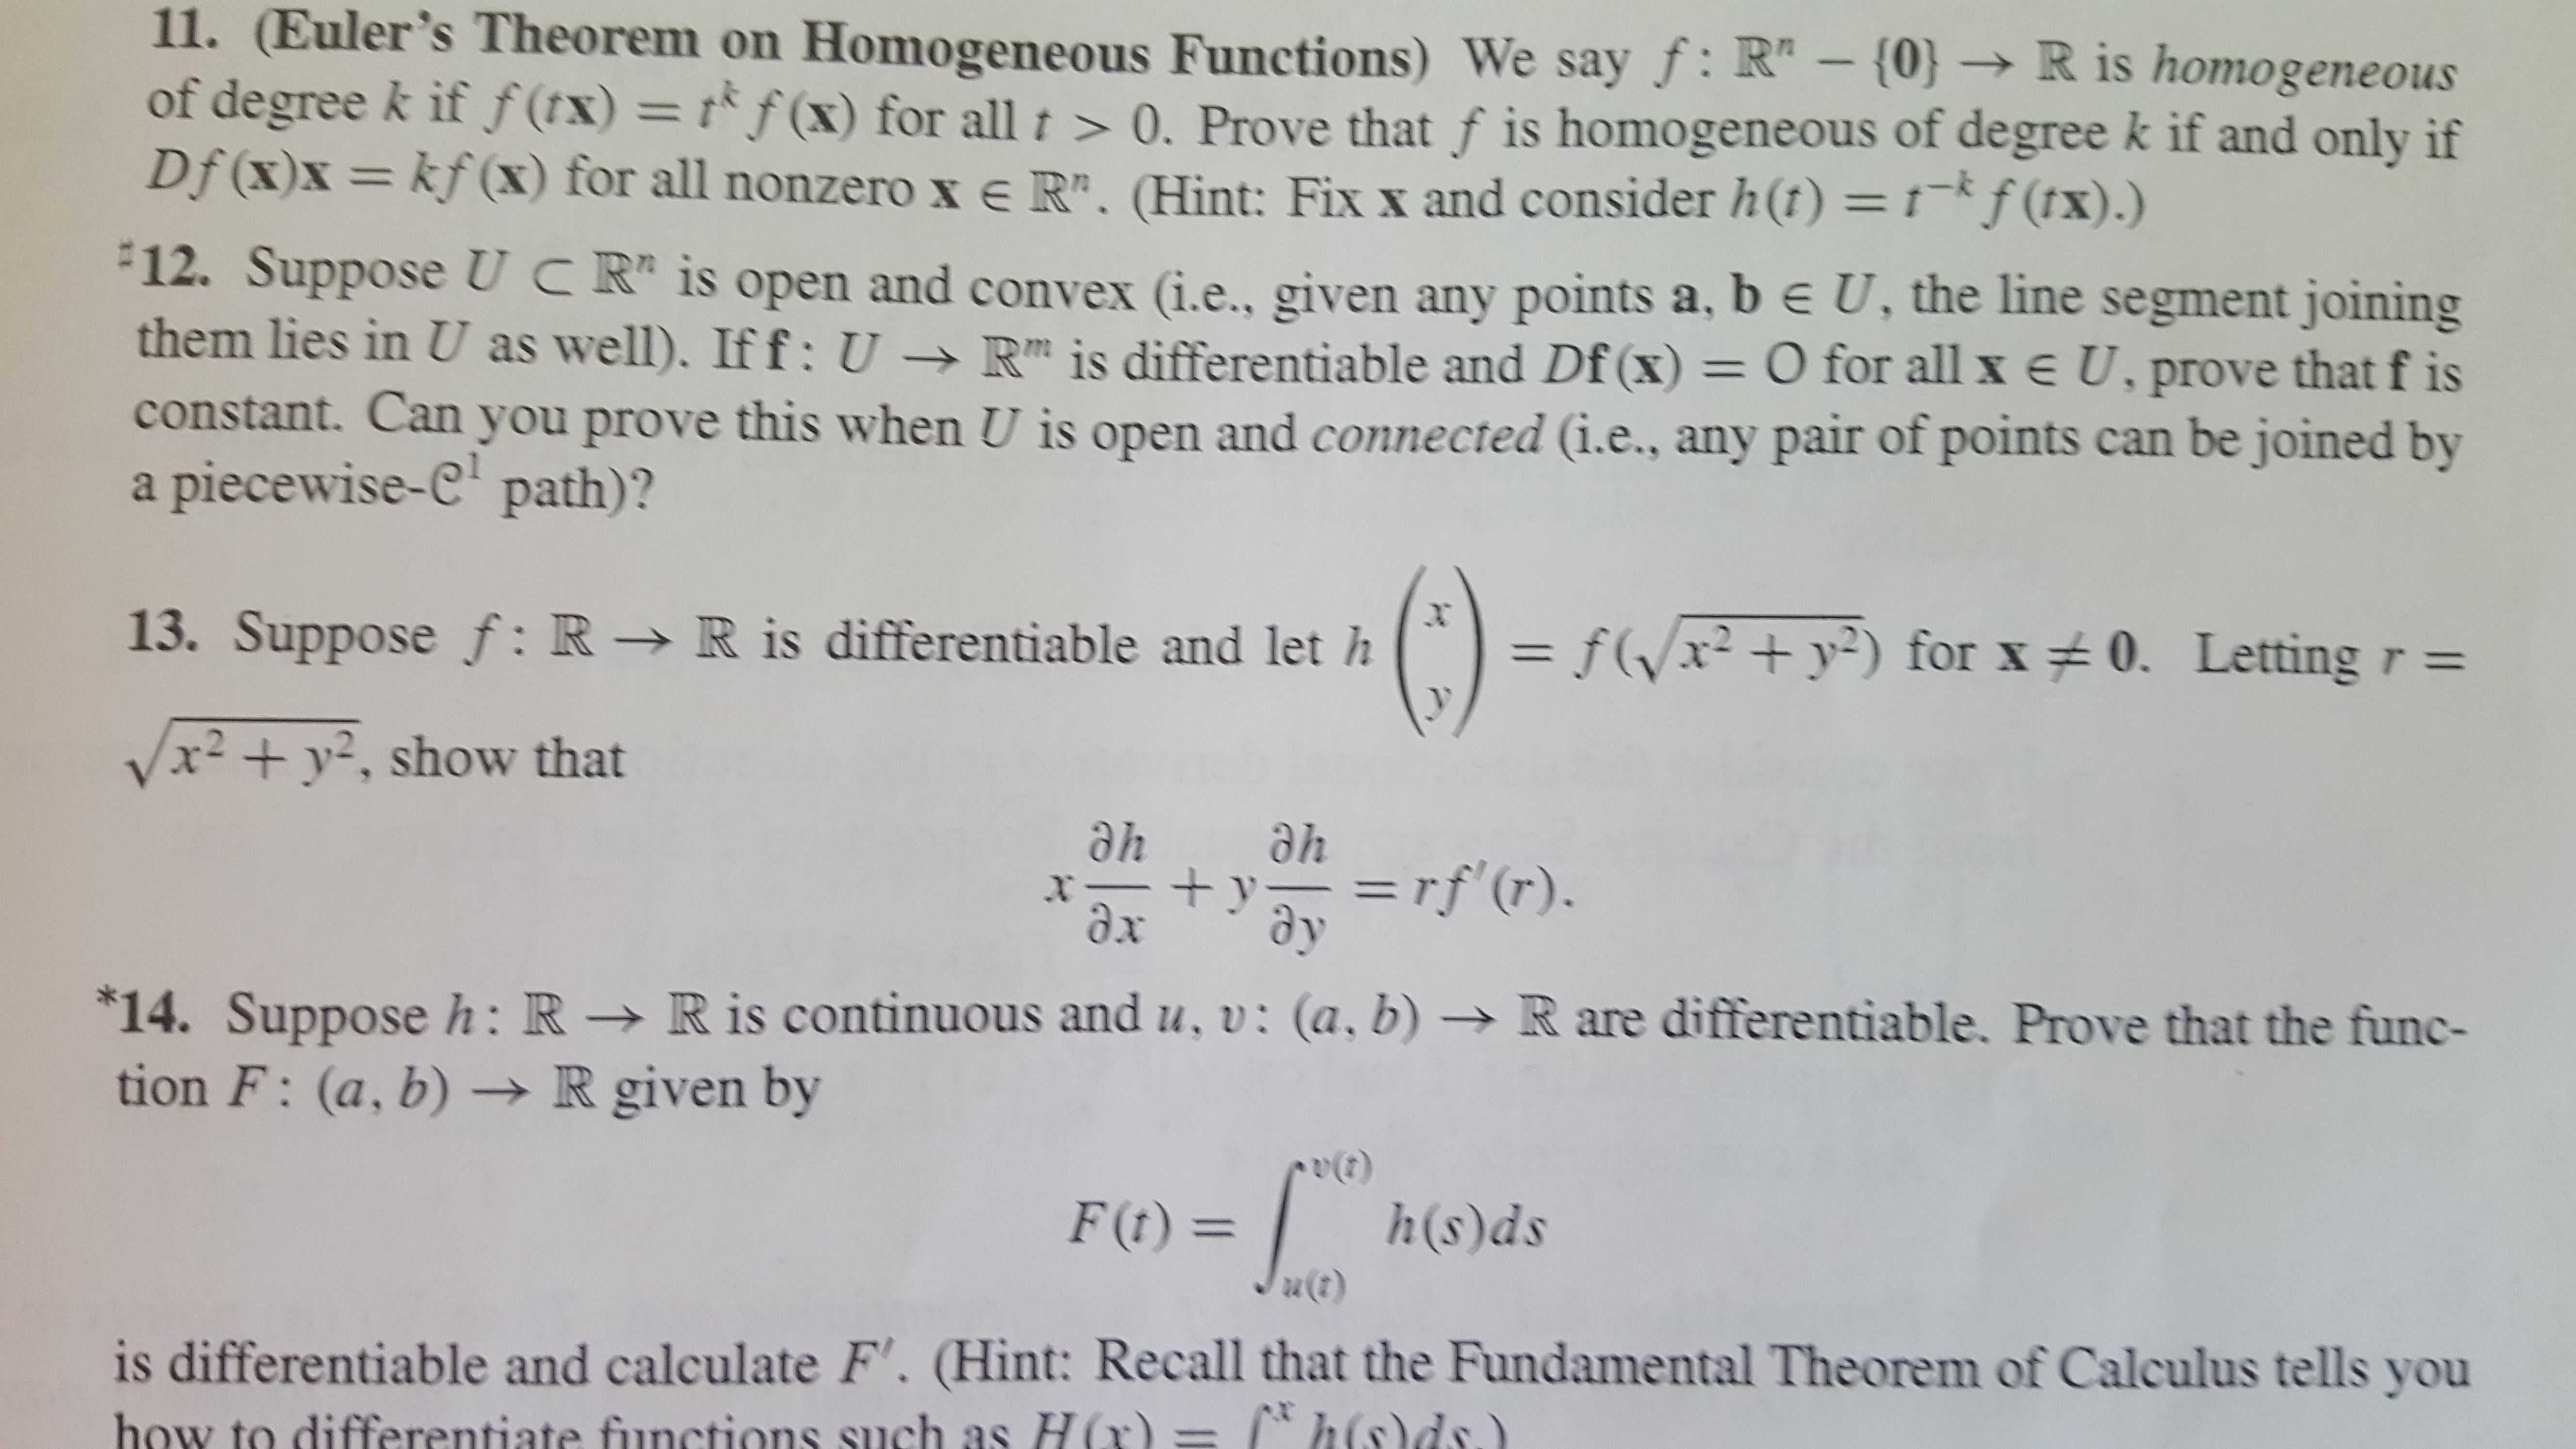 """11. (Euler's Theorem on Homogeneous Functions) We say f: R""""- {0} R is homogeneous of degree k if f(tx) = tf(x) for all t >0. Prove that f is homogeneous of degree k if and only if Df (x)x= kf(x) for all nonzero x e R"""". (Hint: Fix x and consider h(t) = 1-*f (tx) .) 12. Suppose UCR is open and convex (i.e., given any points a, b e U, the line segment joining them lies in U as well). If f: U -R is differentiable and Df (x) = O for all x e U, prove that f is constant. Can you prove this when U is open and connected (i.e., any pair of points can be joined by piecewise-C path)? a 13. Suppose f: R > R is differentiable and let h fxy2) for x 0. Letting r = /x2 +y2, show that ahe he =rf(r). x dx 14. Suppose h: R - R is continuous and u, v: (a, b) tion F: (a, b) -R given by R are differentiable. Prove that the func- h(s)ds F(t)= is differentiable and calculate F'. (Hint: Recall that the Fundamental Theorem of Calculus tells you how to differentiate functions such as H (r) = 2"""